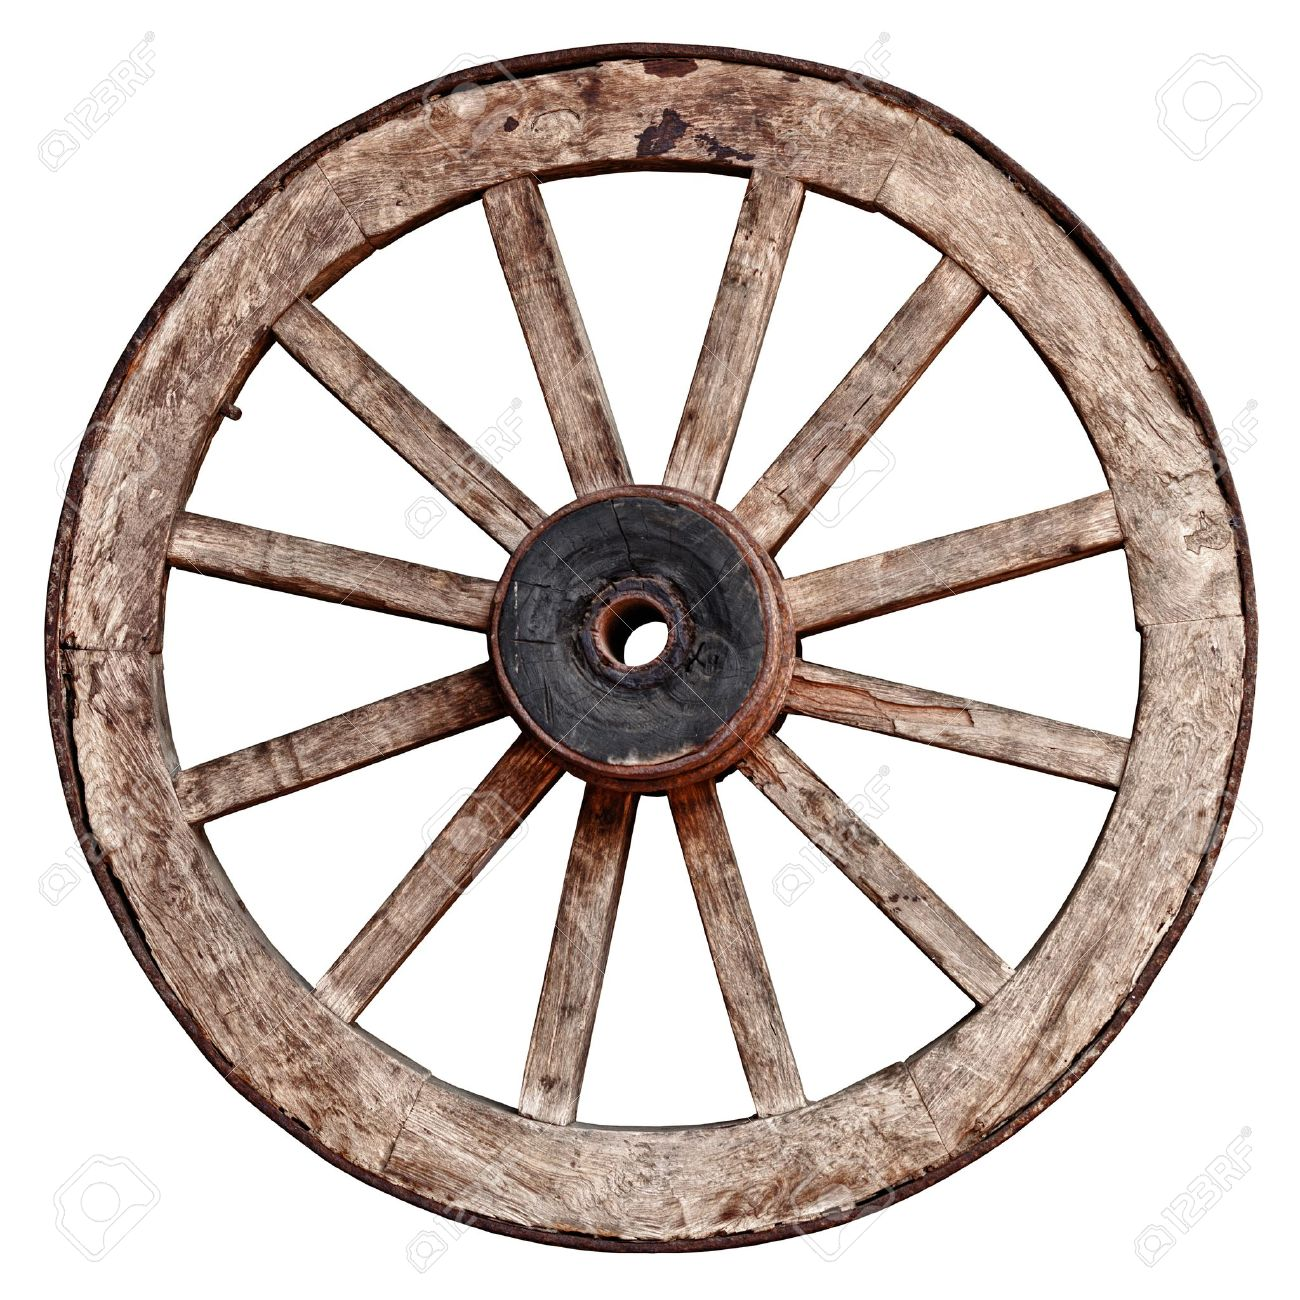 Old wooden wagon wheel isolated on white background stock photo old wooden wagon wheel isolated on white background stock photo 19743640 publicscrutiny Choice Image